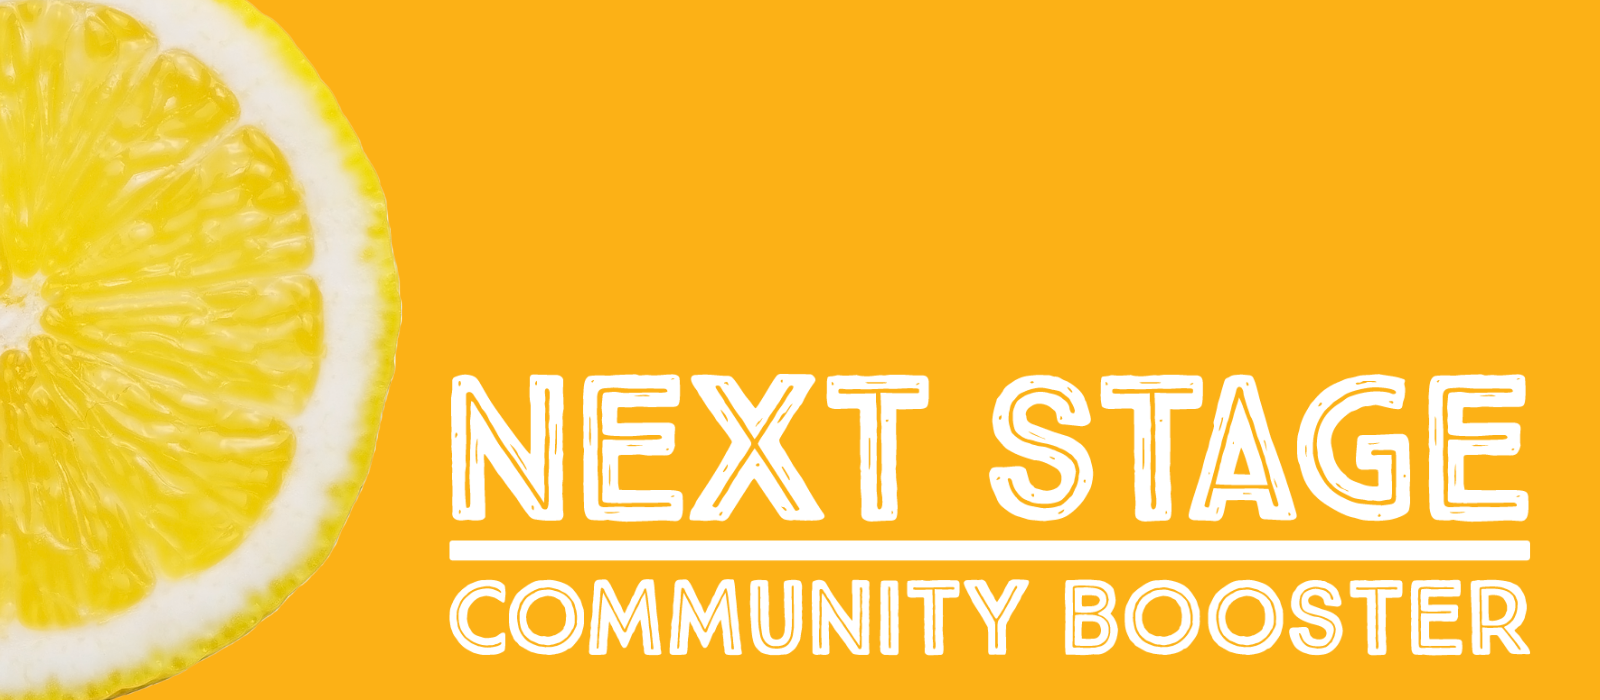 Next Stage Community Booster